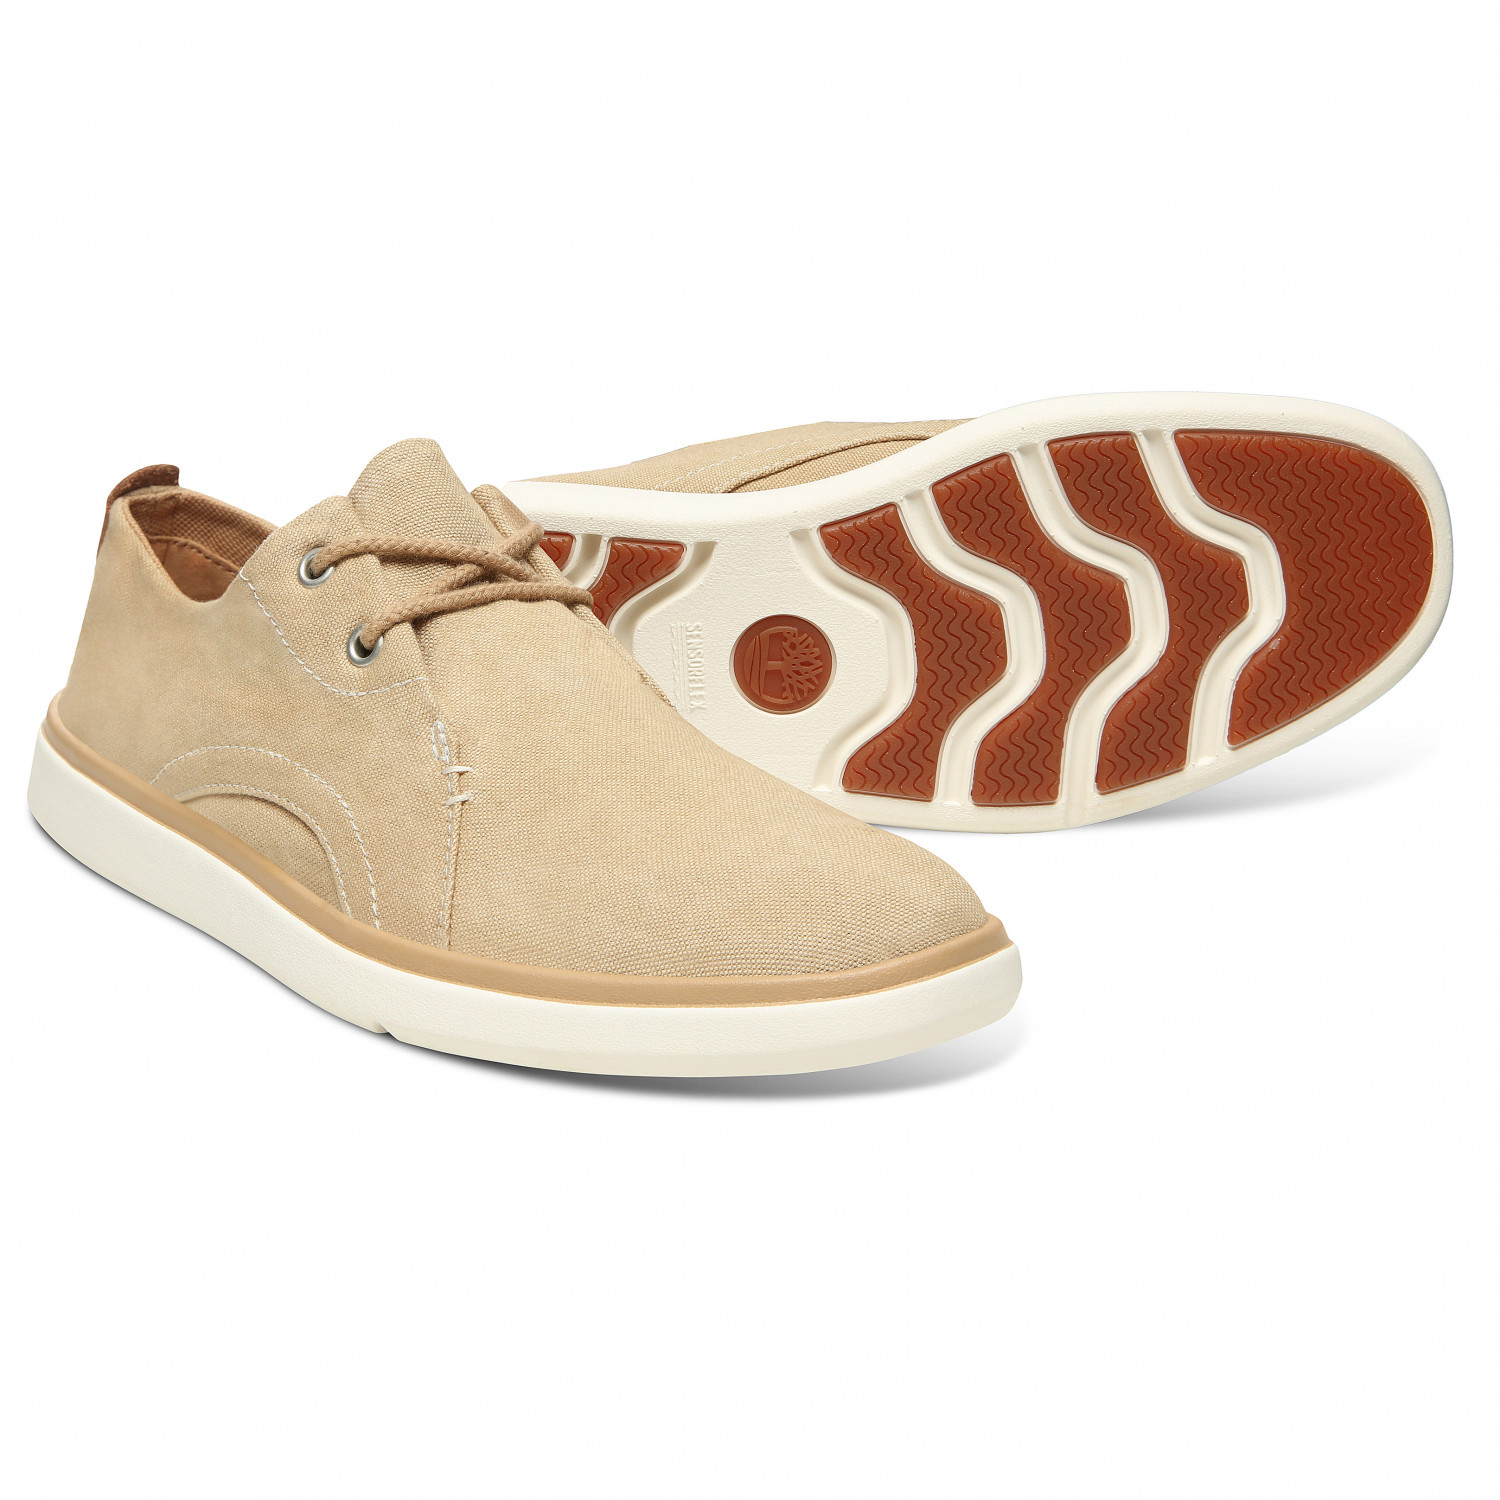 Timberland Gateway Pier Casual Oxford Sneaker Iced Coffee | 11,5 (US)